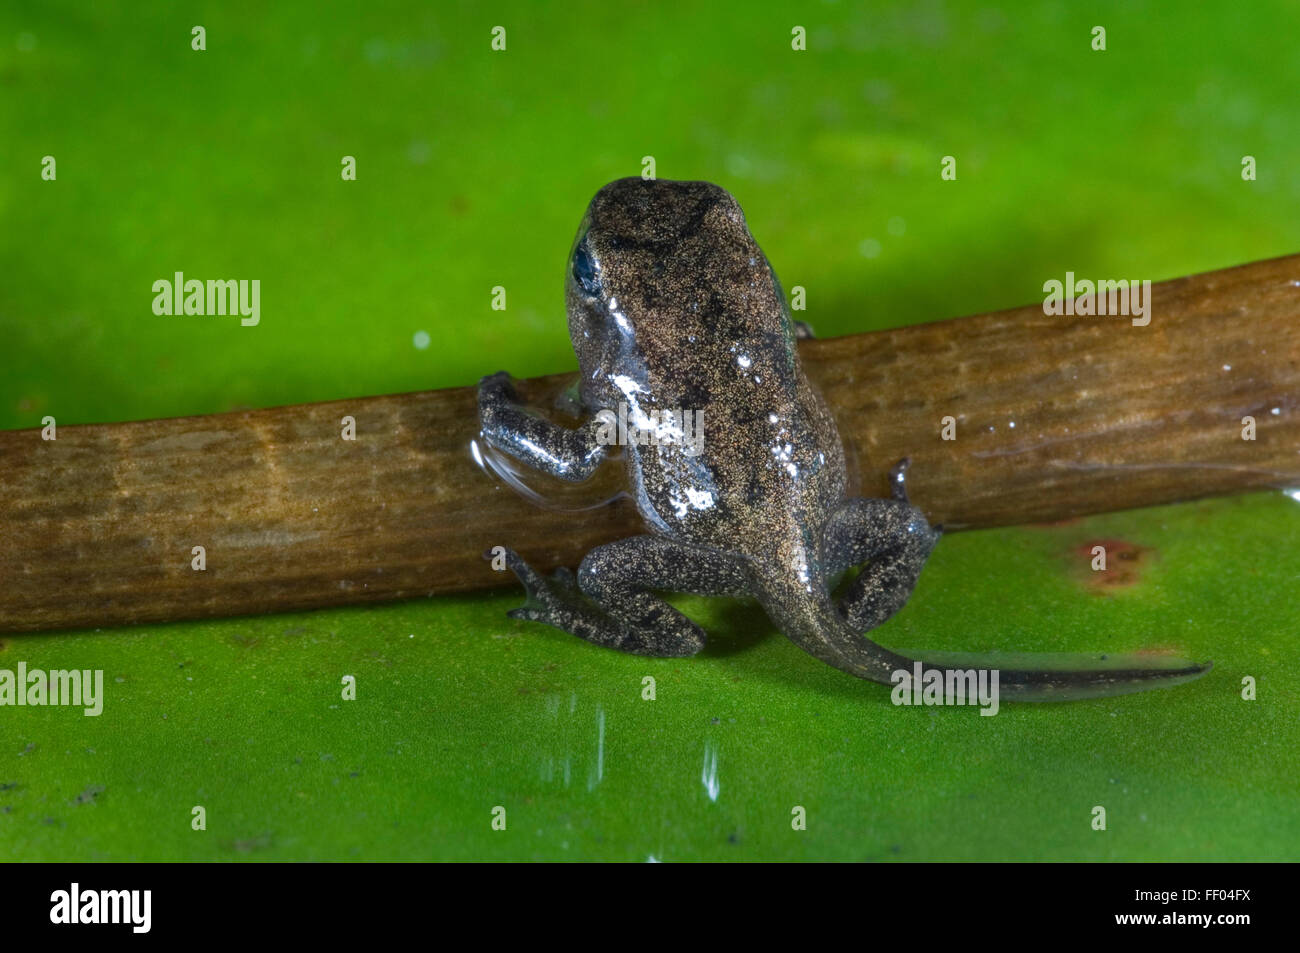 Common Frog (Rana temporaria) froglet with limbs well developed leaves the water - Stock Image